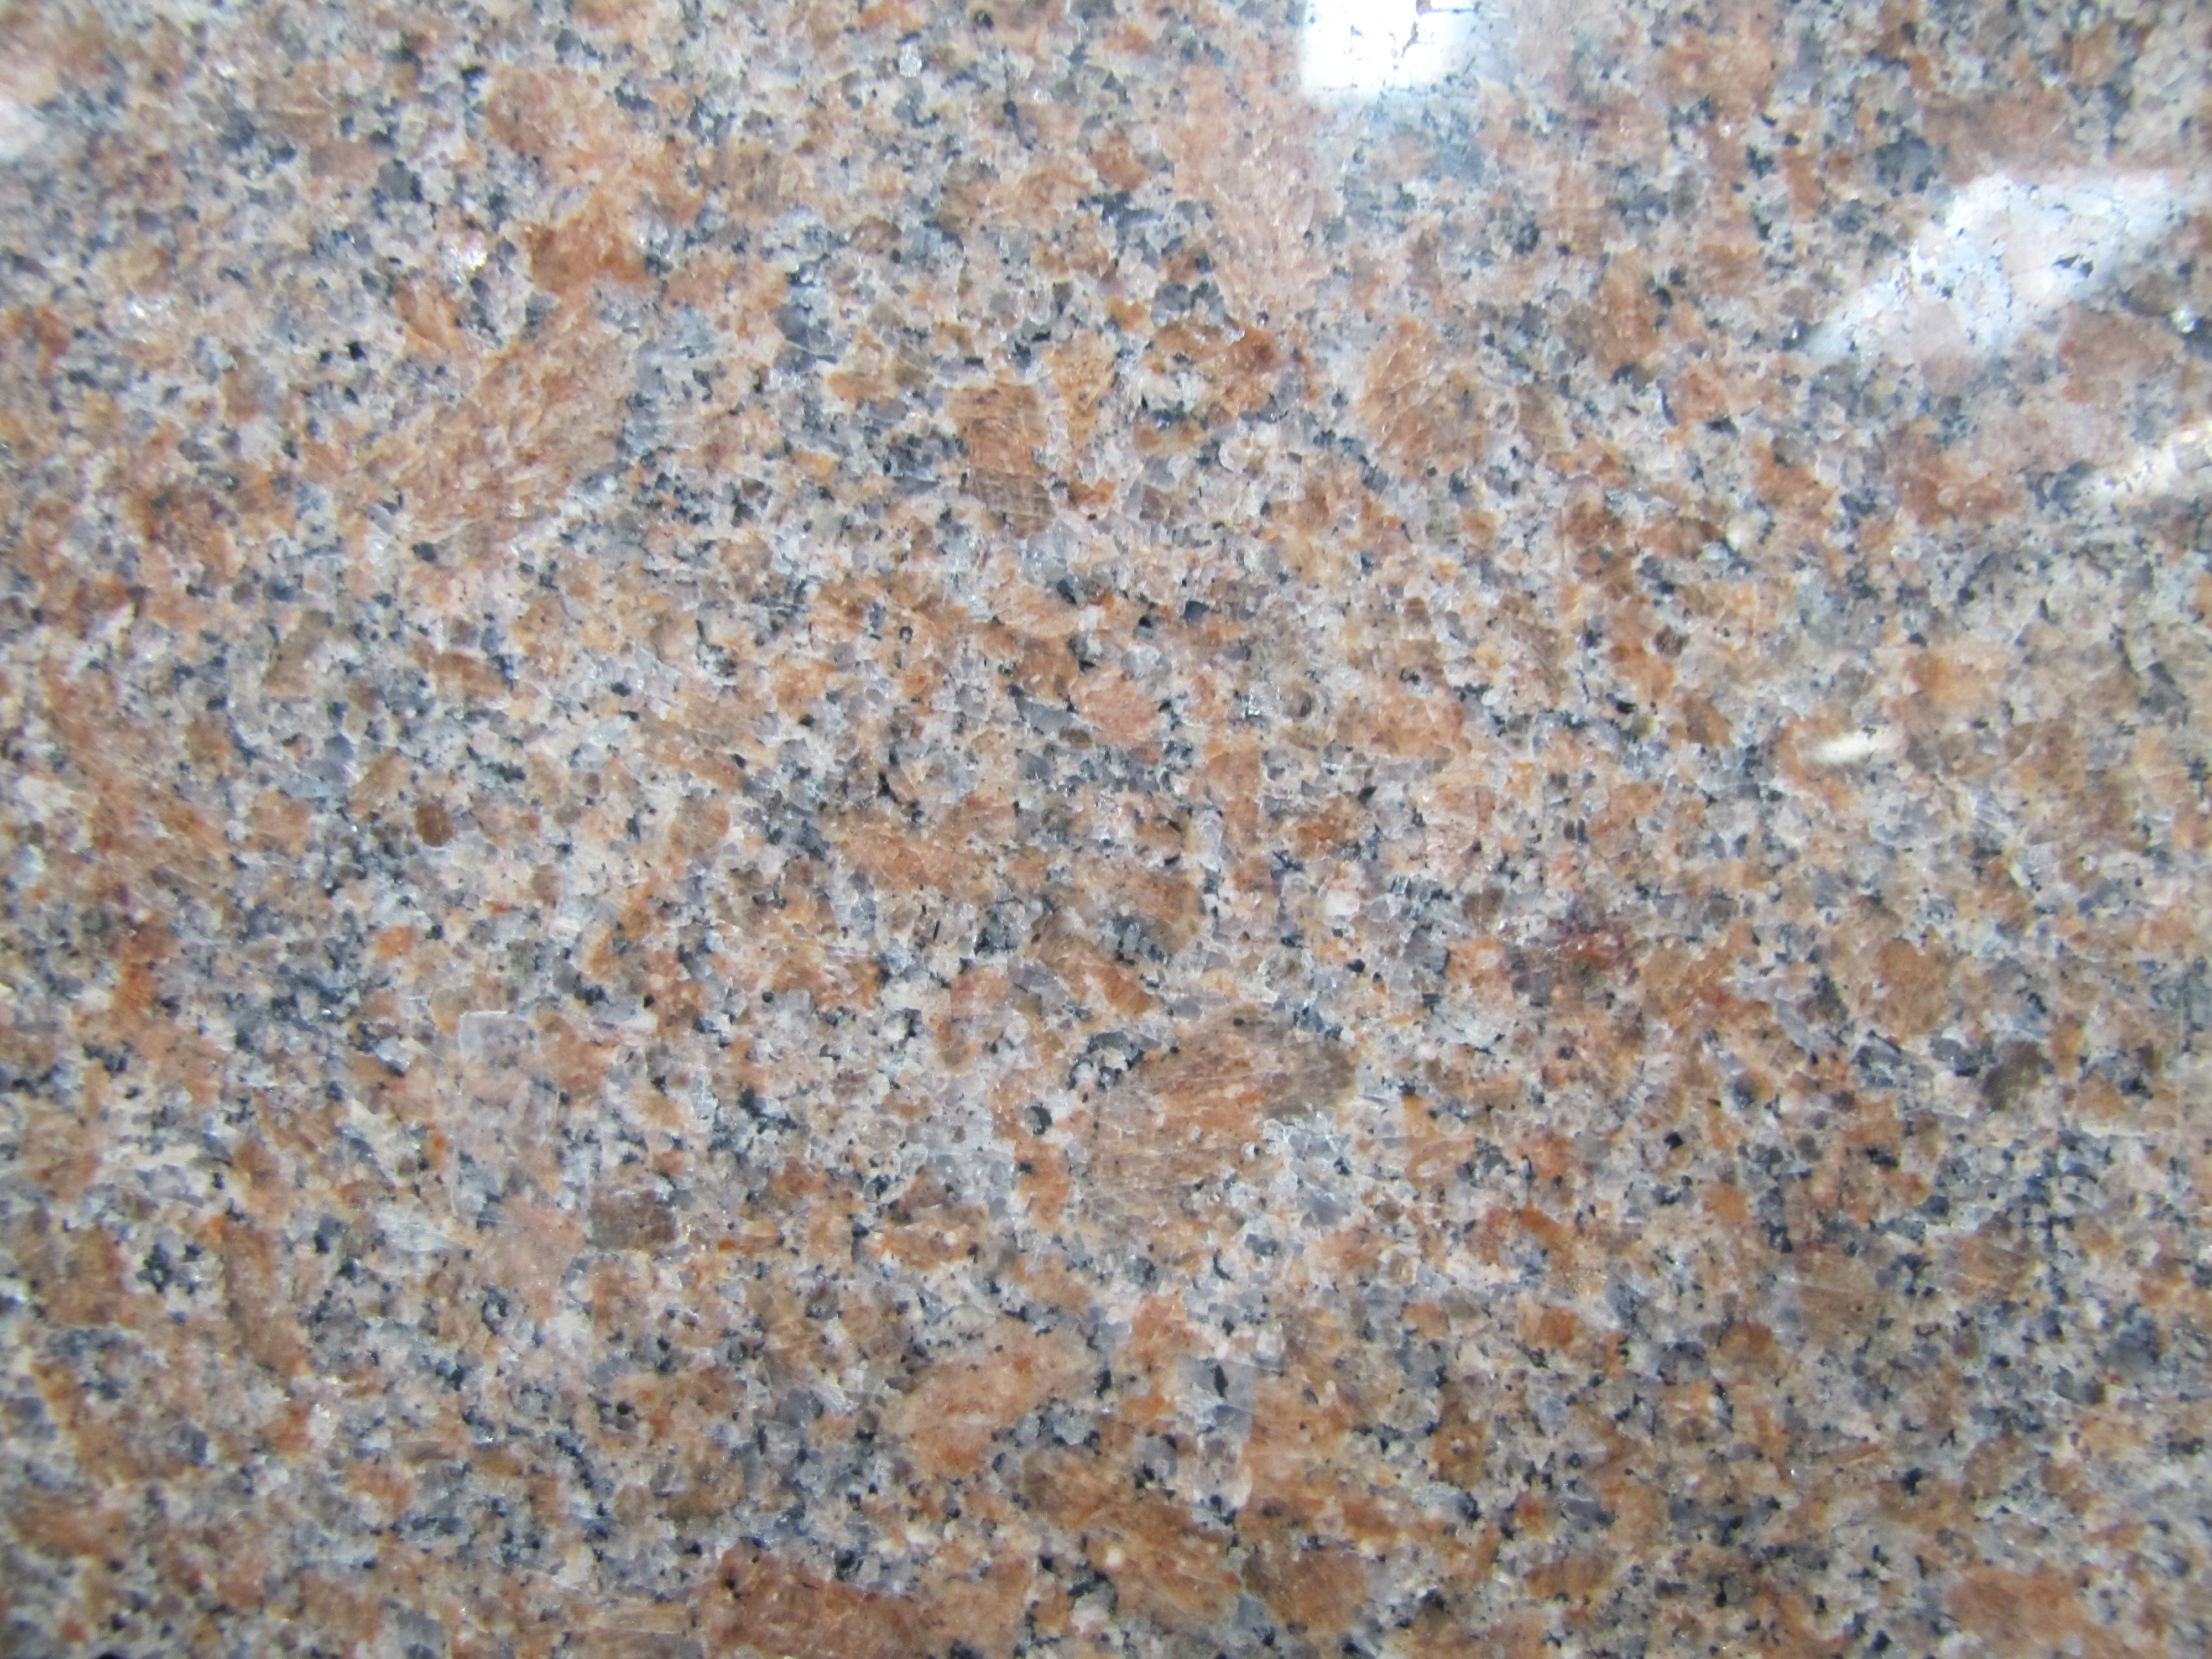 Photo of a polished slab of 'Canadian Mist' granite from the Lac du Bonnet area.